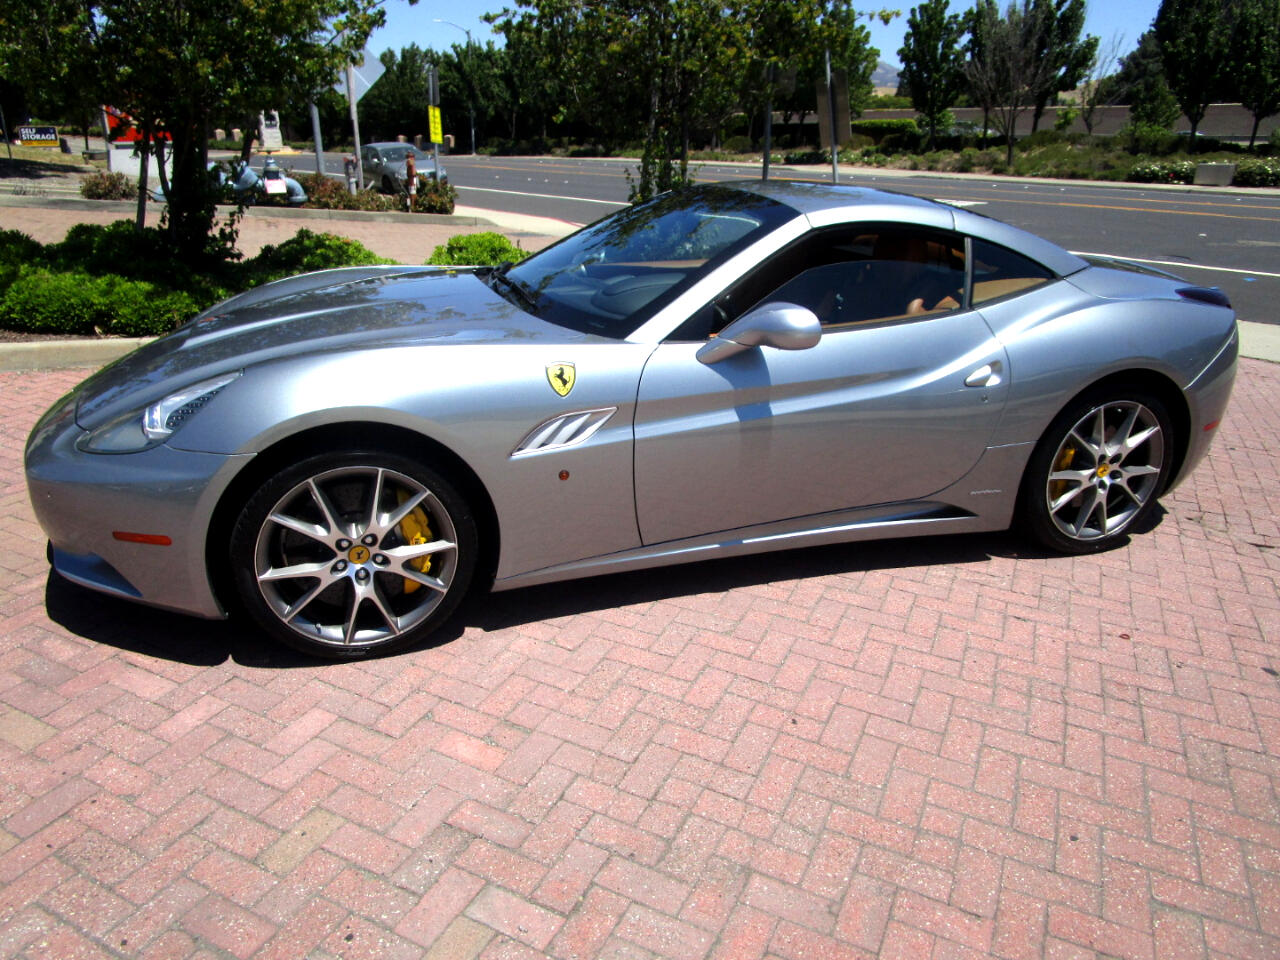 2013 Ferrari California CONV*NAV*SAT*BT*POWER LTHR HEAT SEATS*REAR CAMERA*